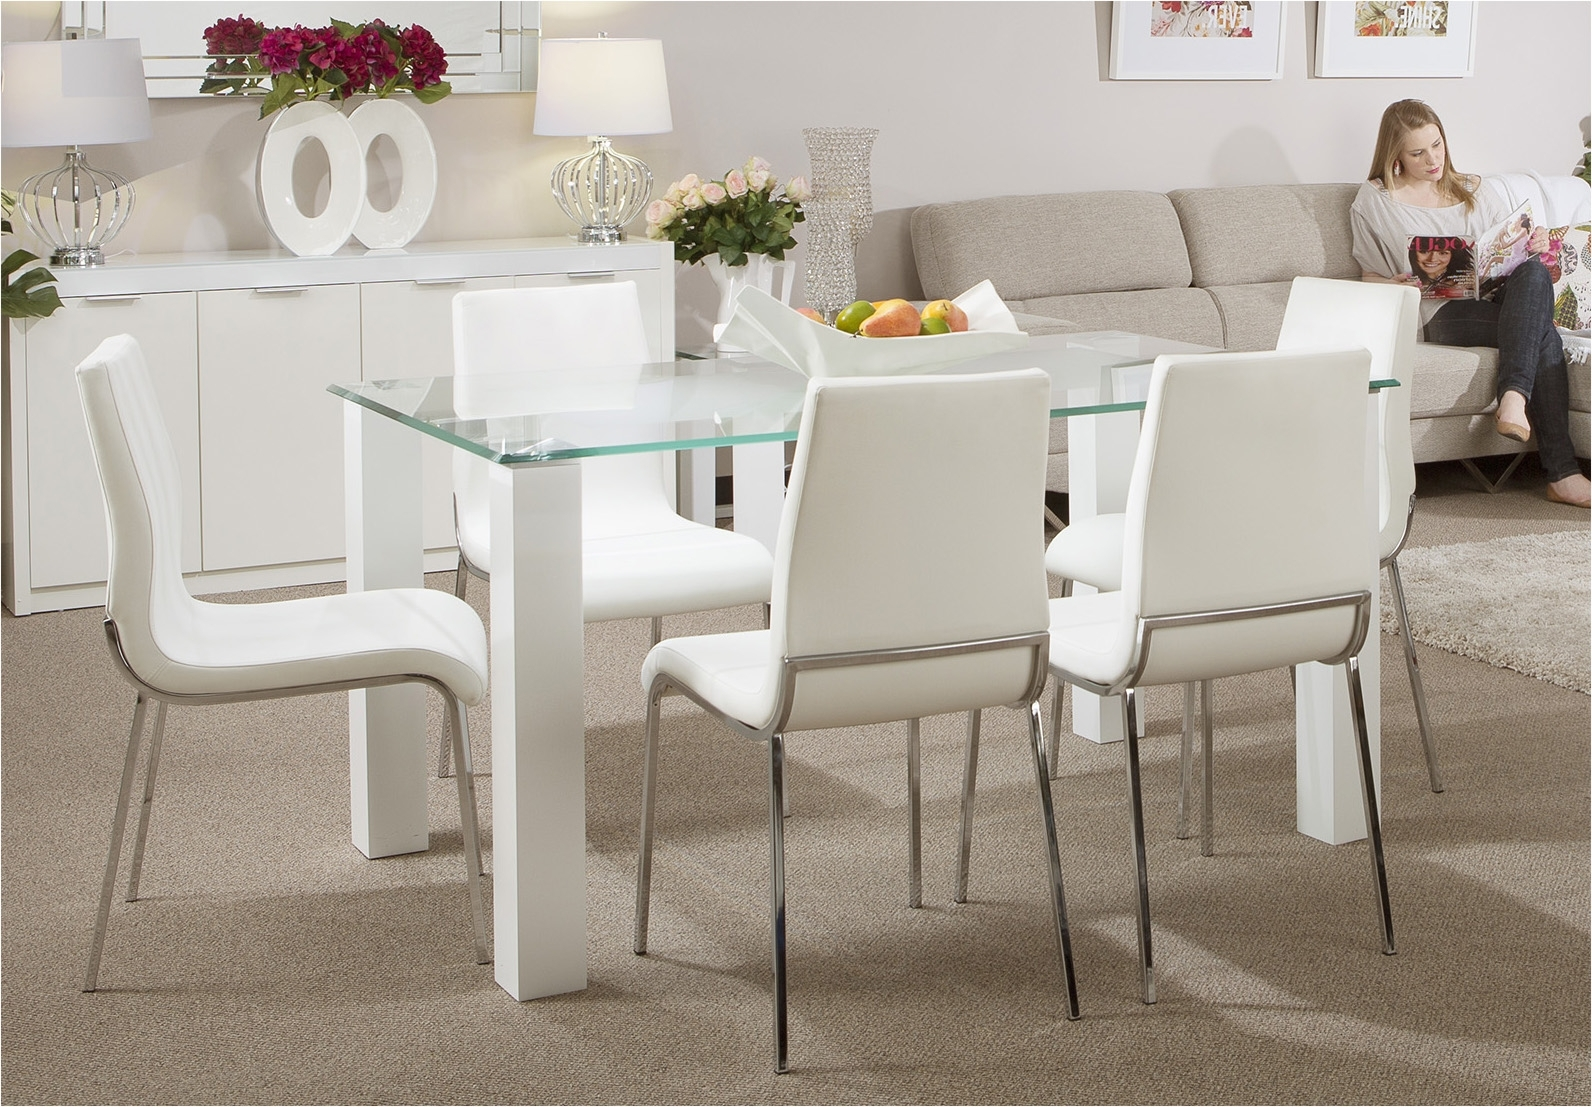 Modern Dining Suites Pertaining To Most Up To Date Dining: Modern Dining Suites (View 2 of 25)